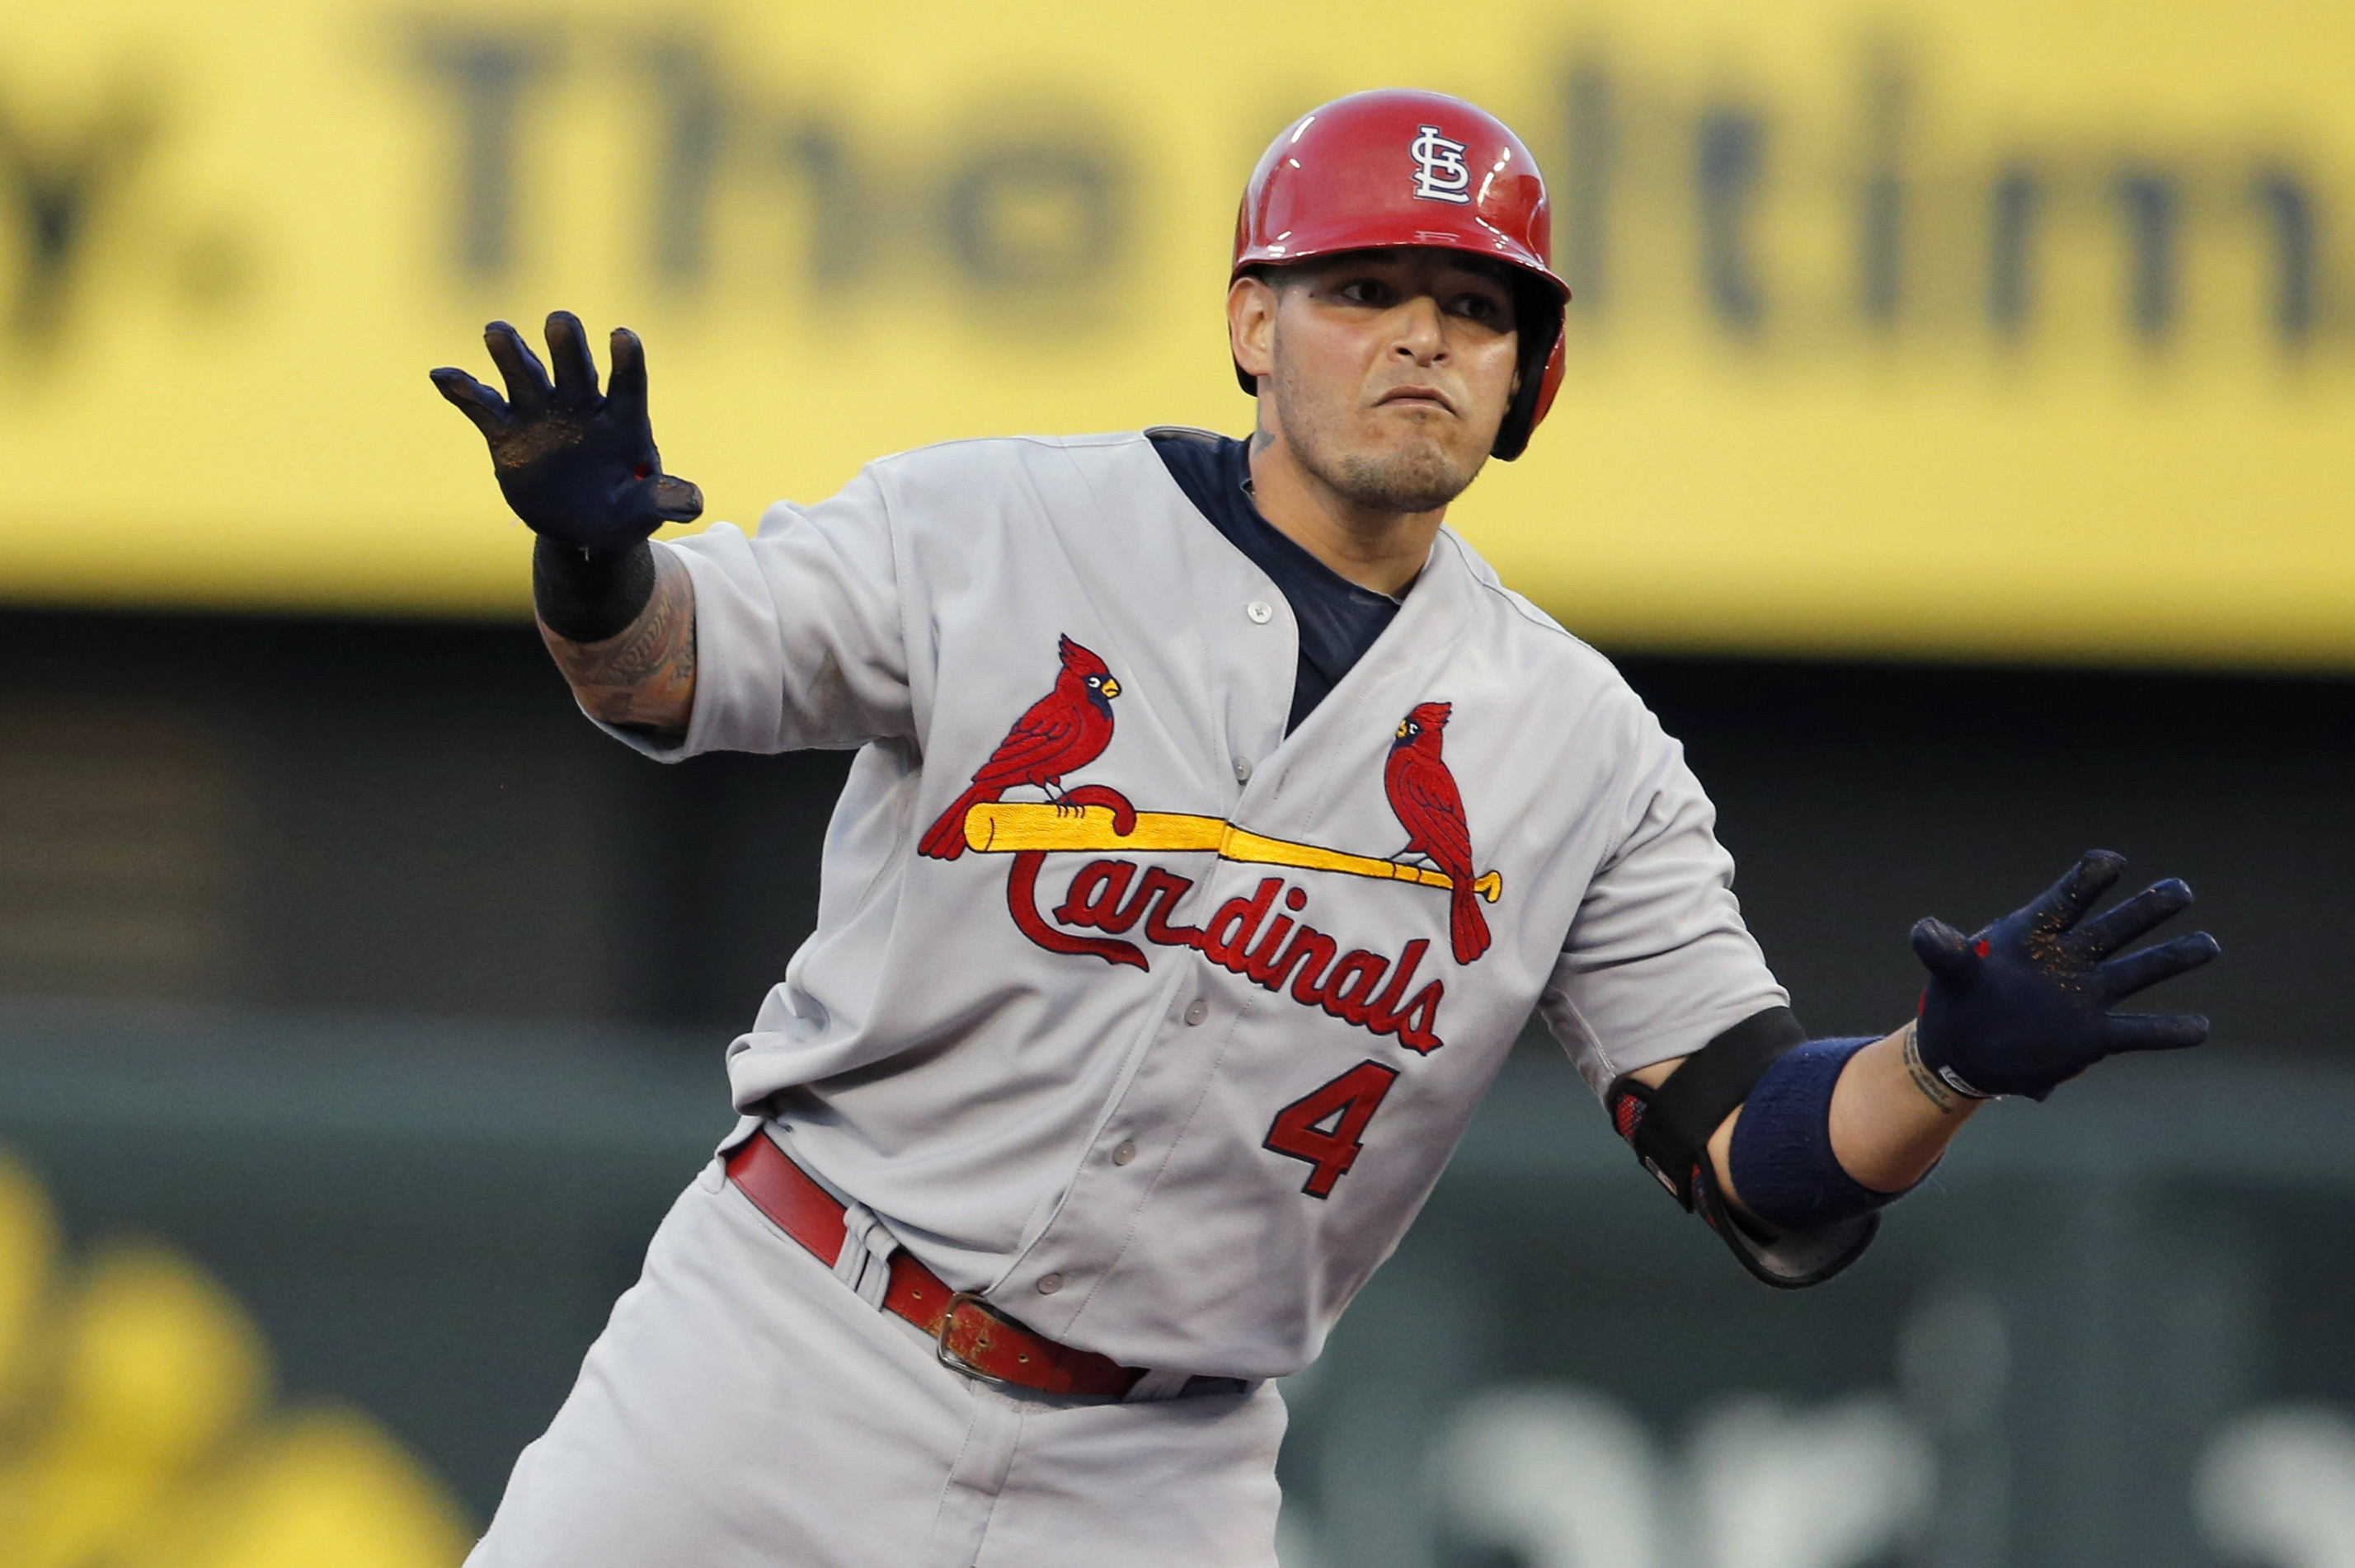 Cardinals all-star catcher Yadier Molina, in a 2-for-21 slump and batting .128 over the last 11 games, was given the day off Saturday by manager Mike Matheny because he's fried from trying so hard.